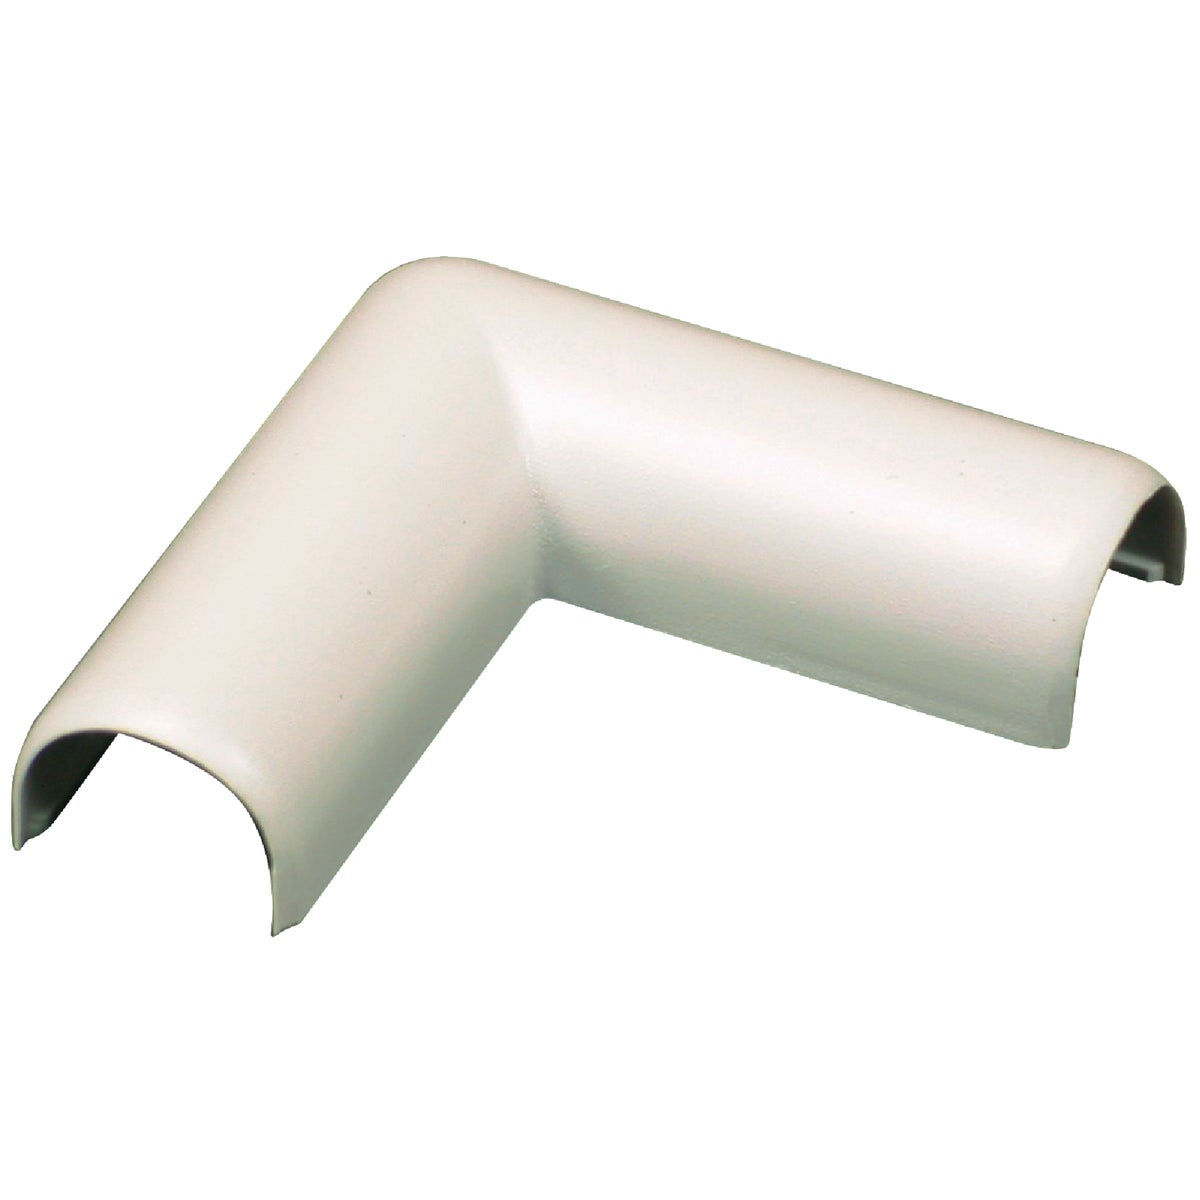 CORDMATE FLAT ELBOW - C6 by Wiremold / Legrand